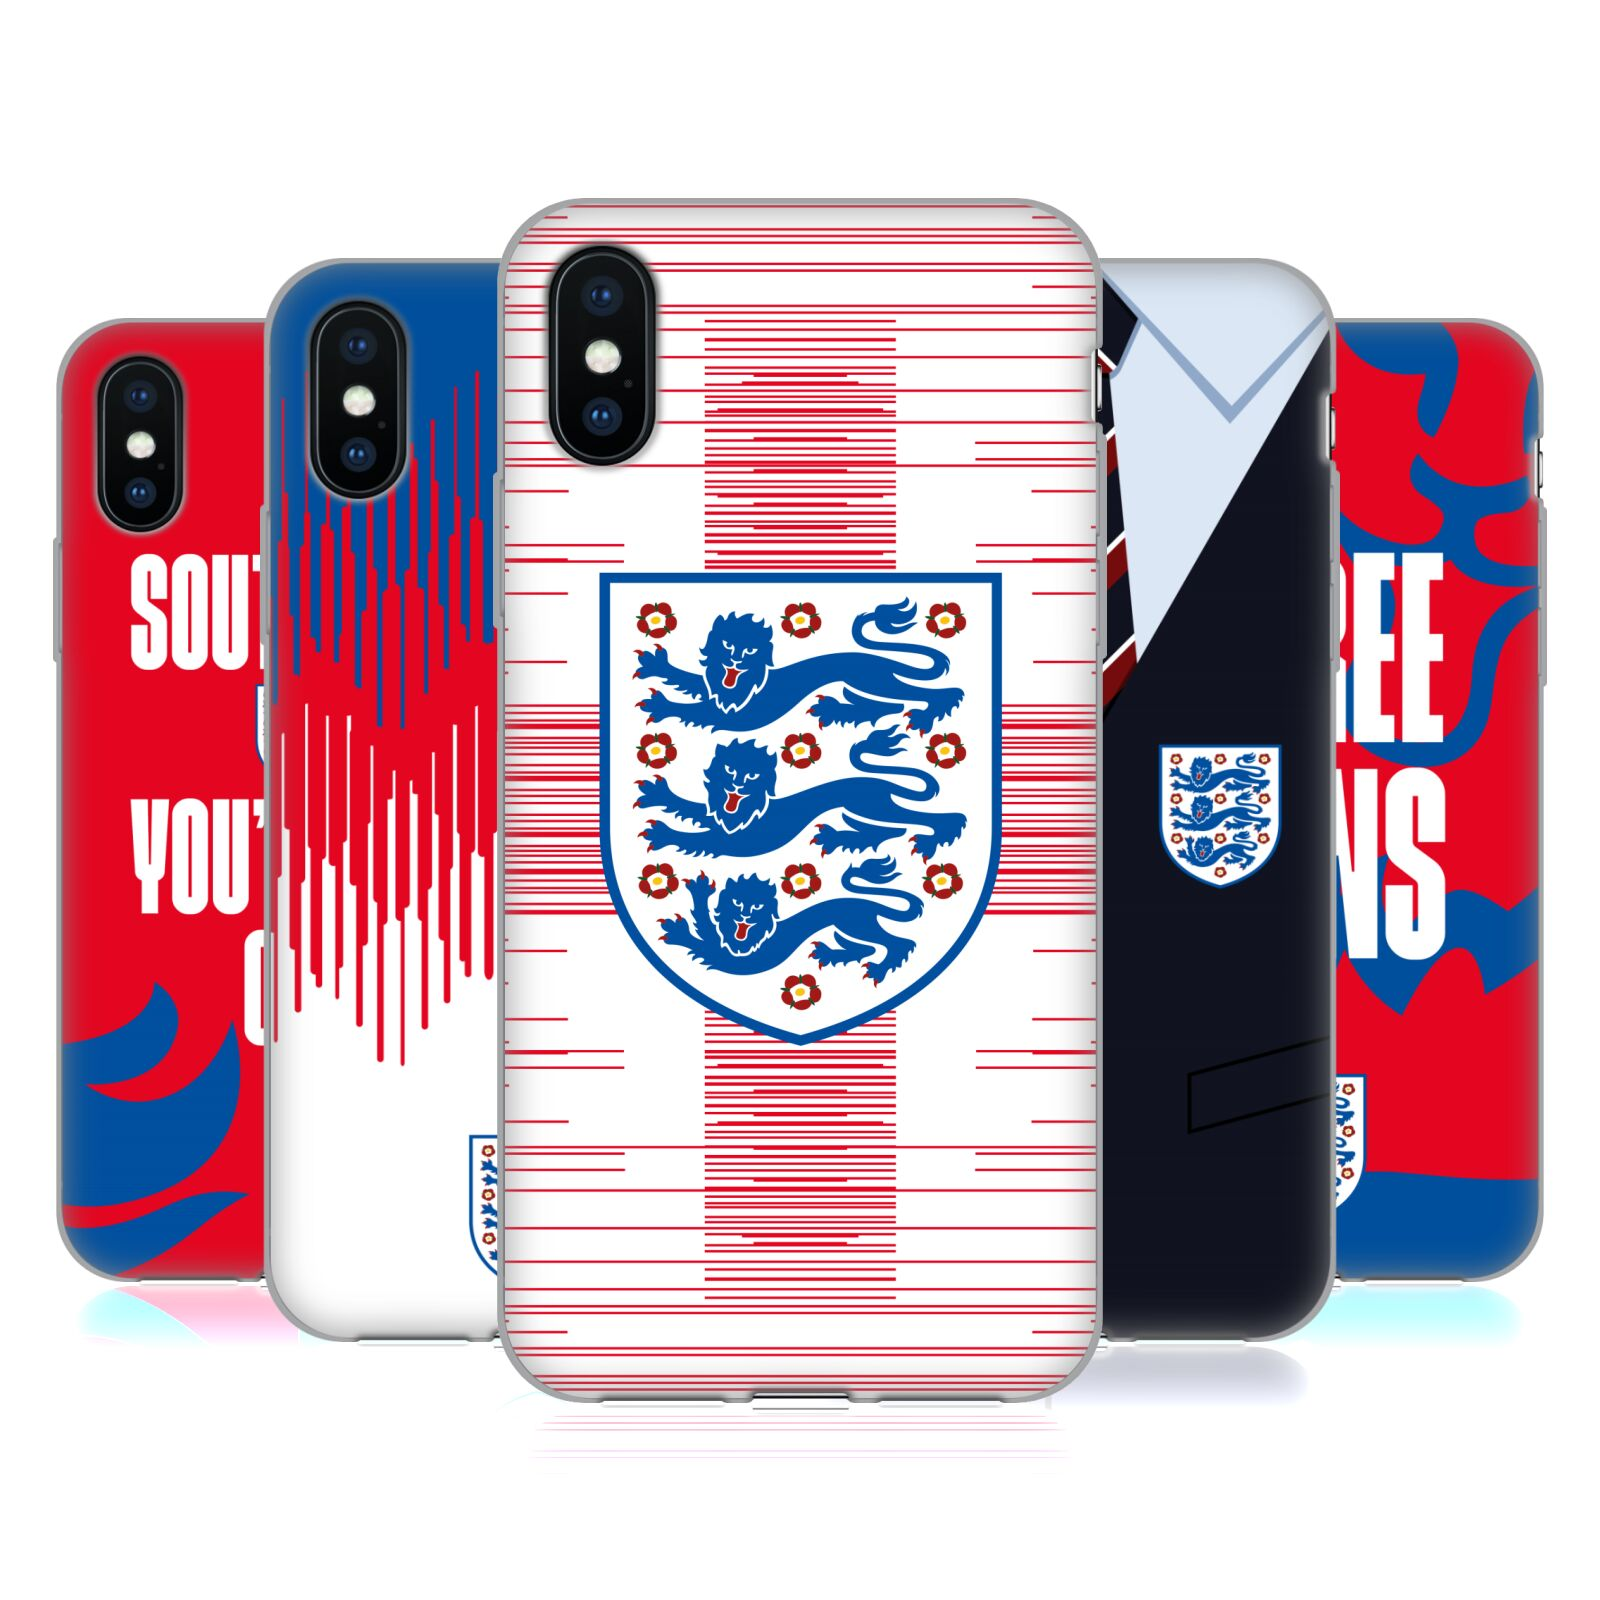 England National Football Team <!--translate-lineup-->2018/19 Crest<!--translate-lineup-->